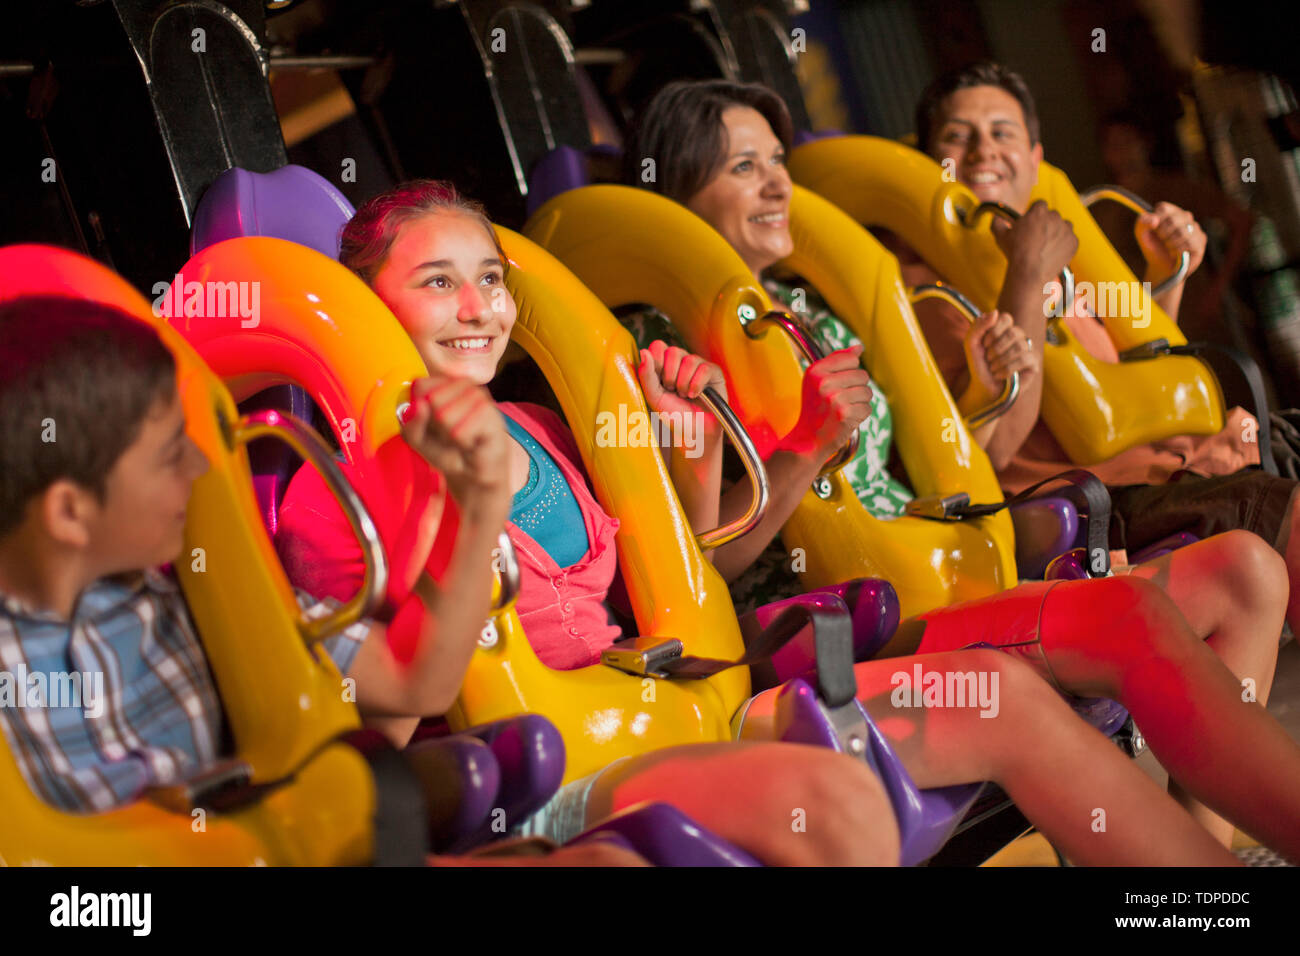 Smiling family preparing to go on a ride at an amusement park. - Stock Image